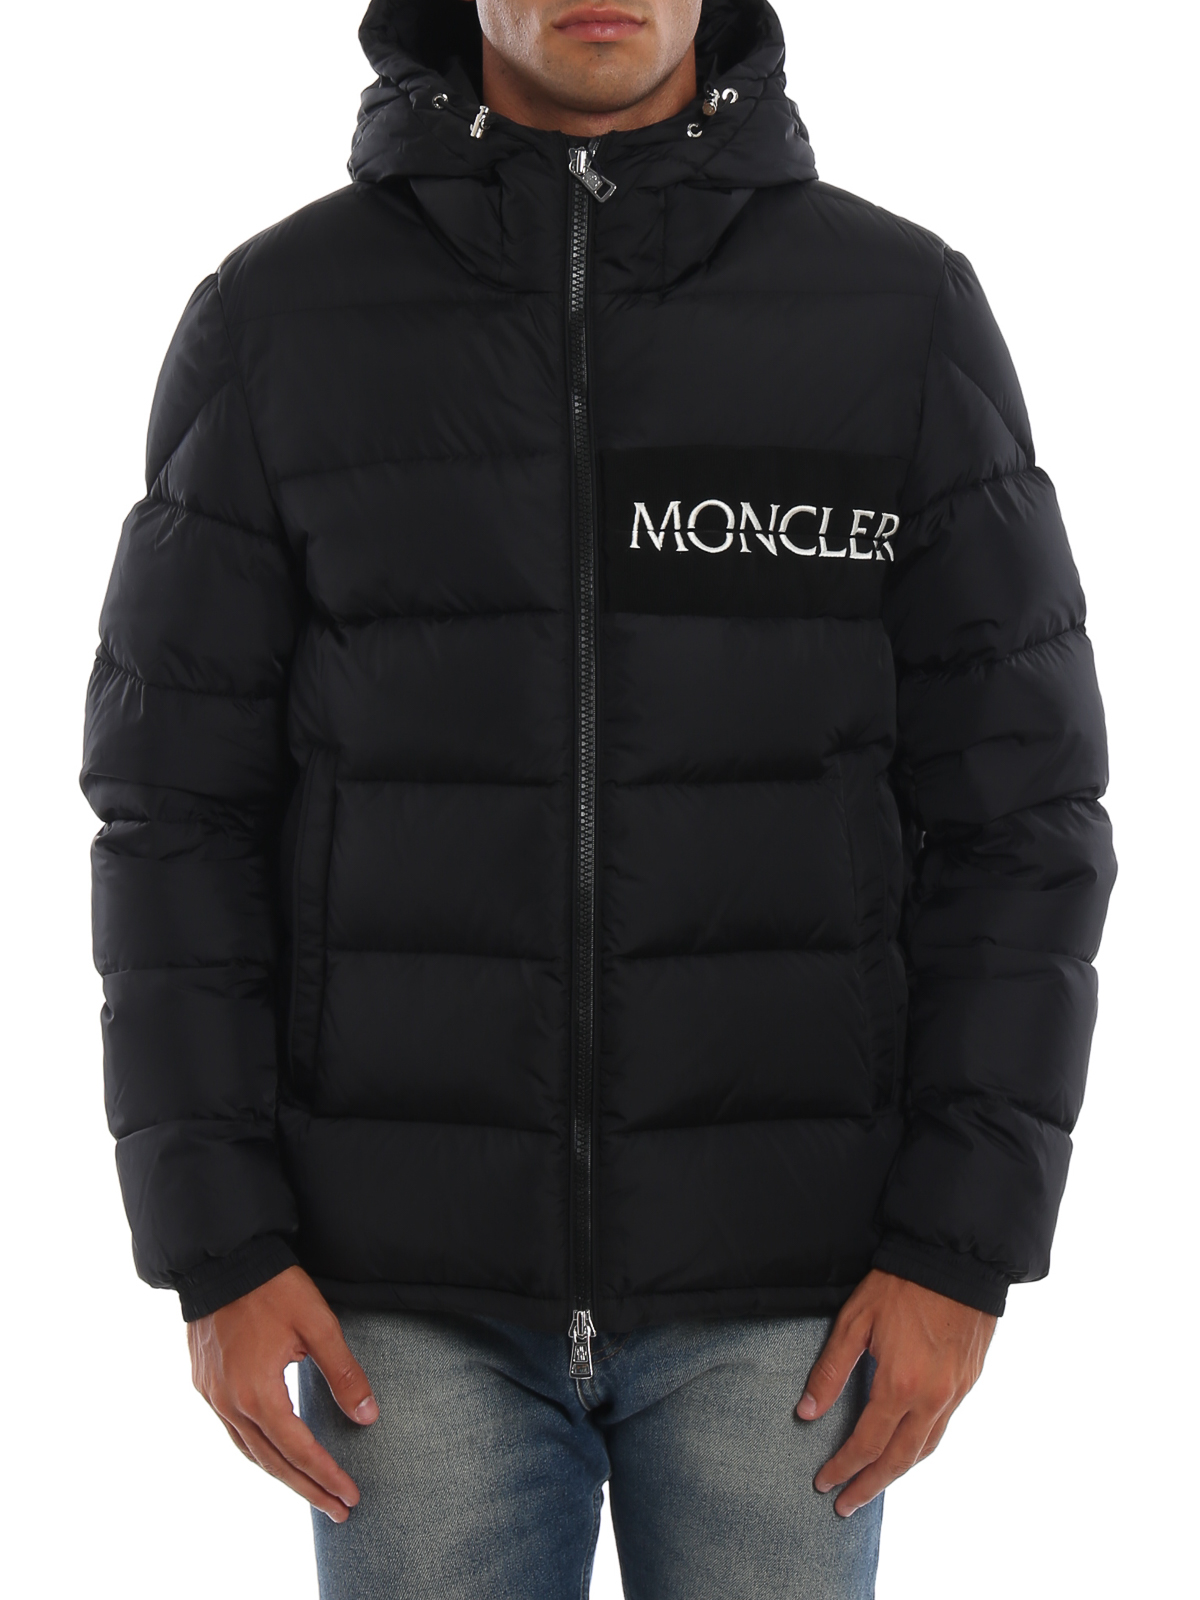 fd2758598 Moncler - Aiton embroidered logo black puffer jacket - padded ...